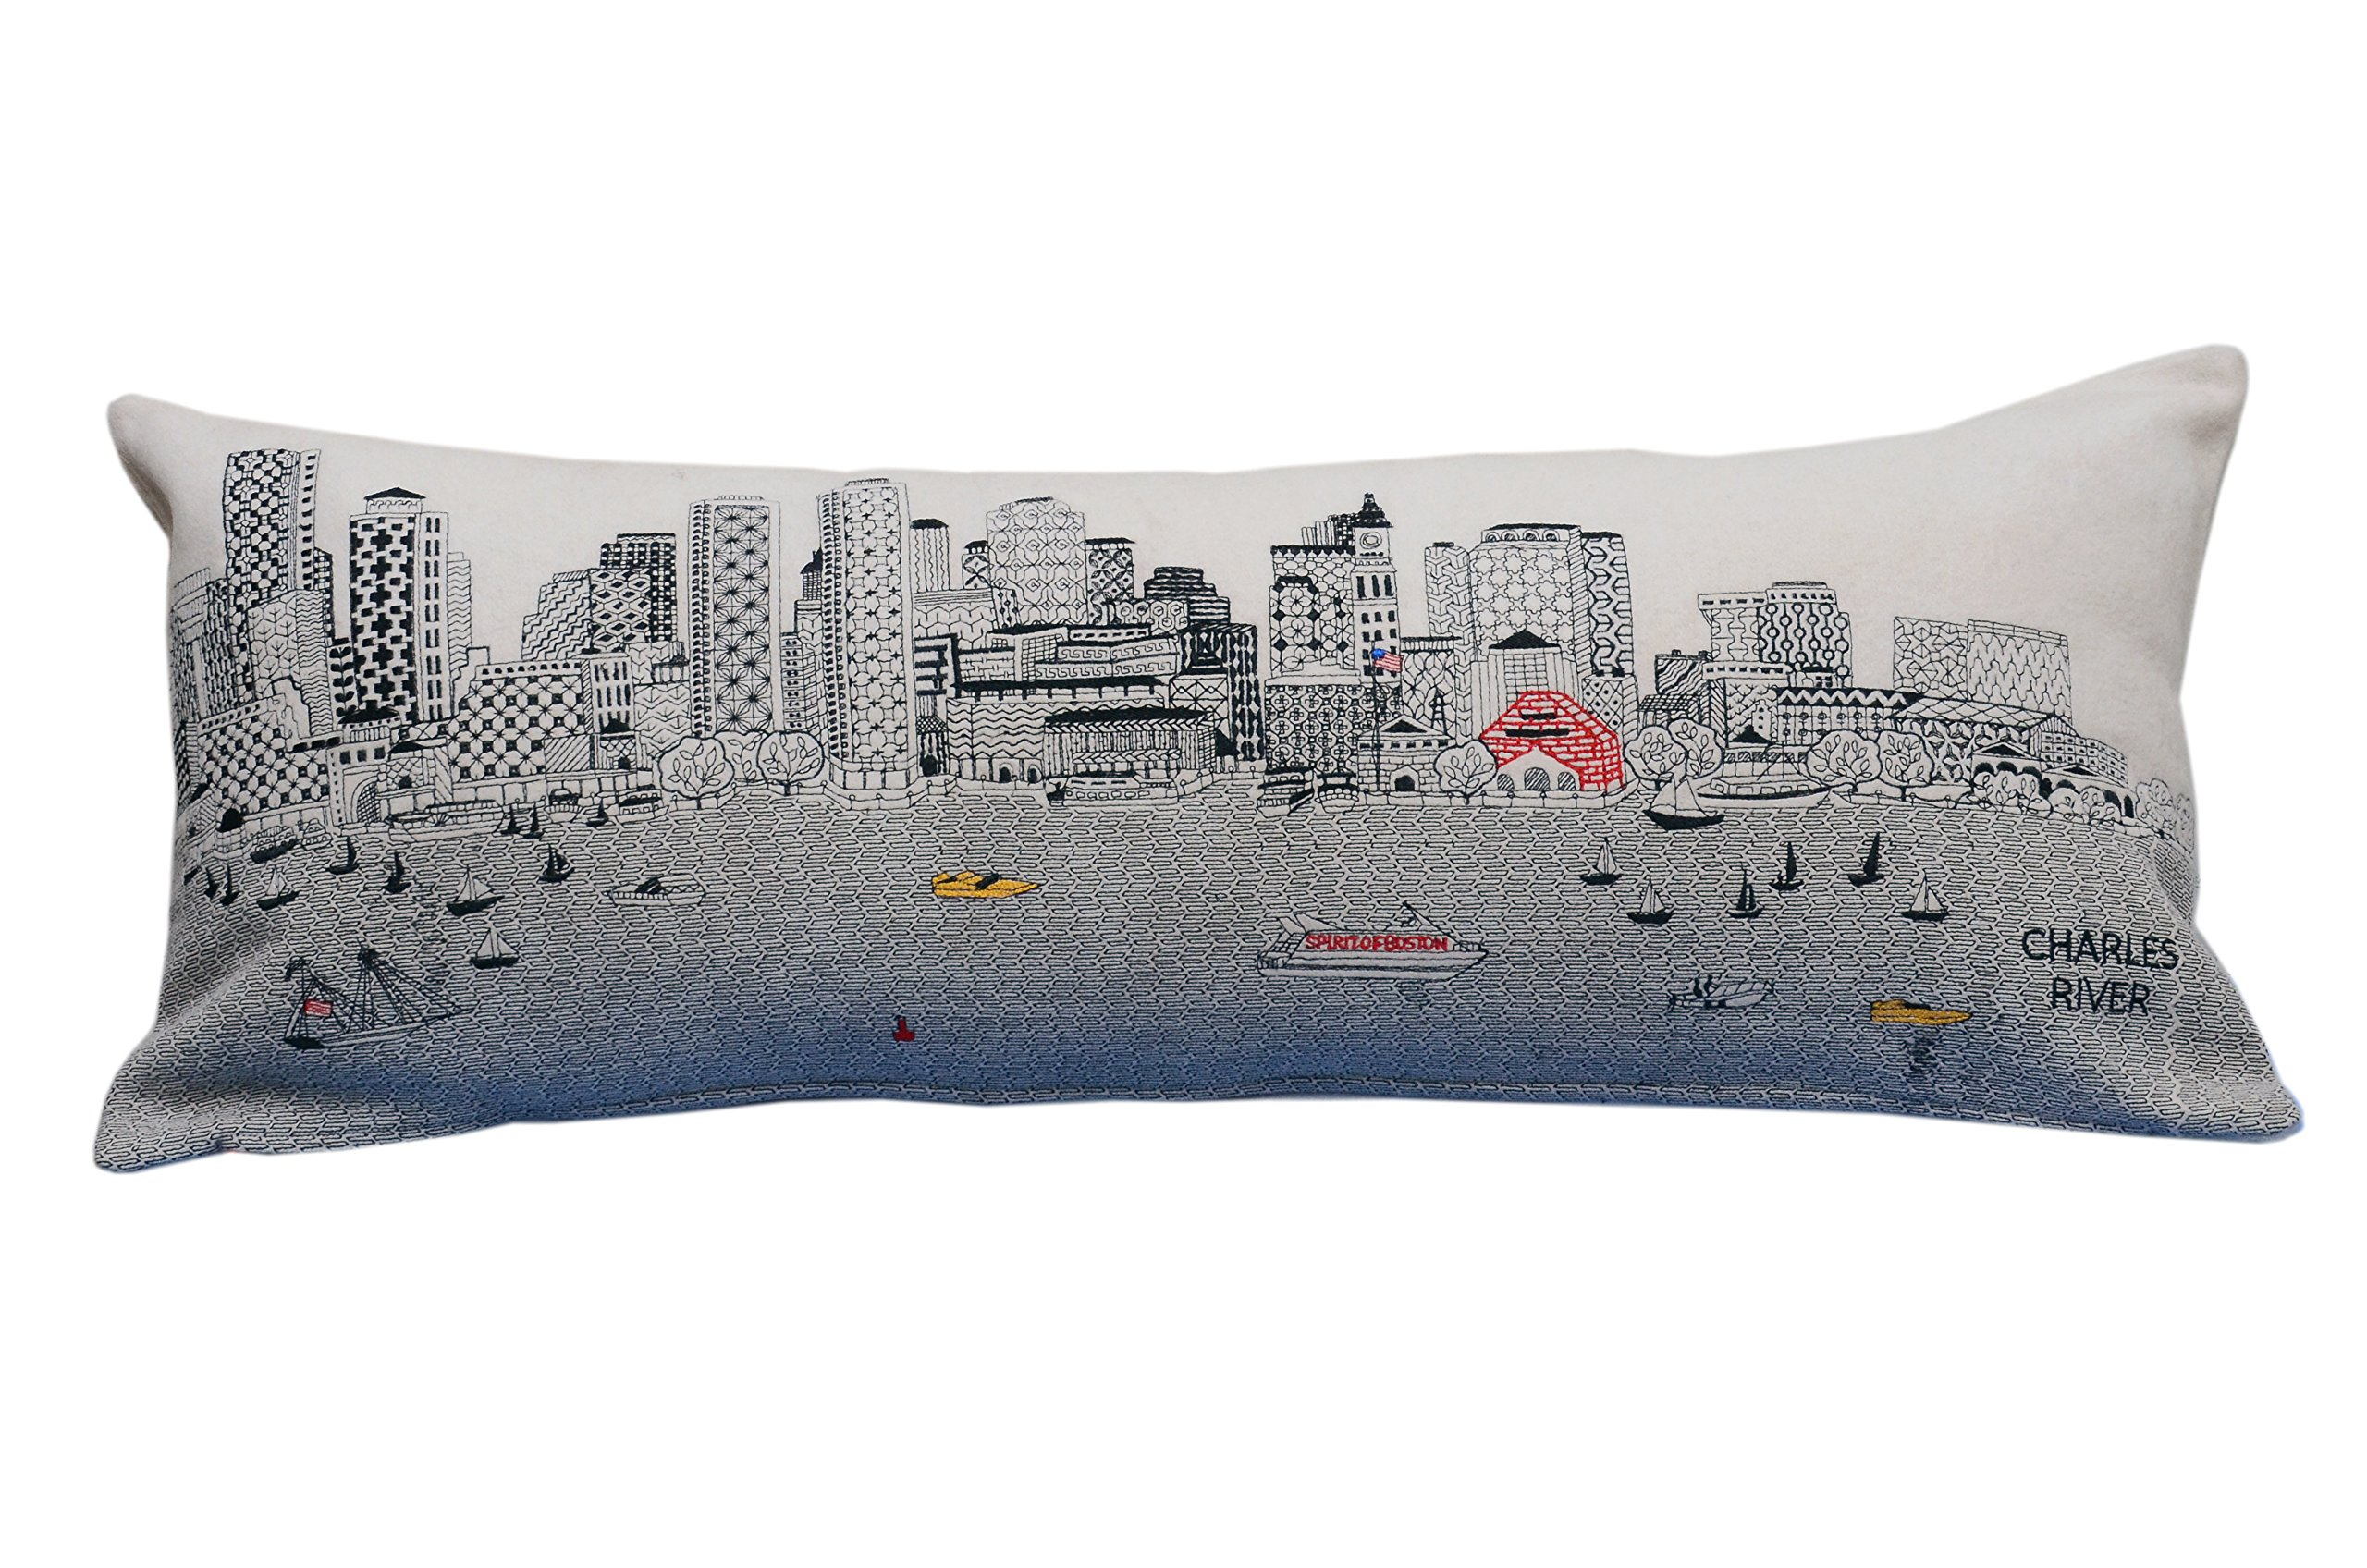 Beyond Cushions Polyester Throw Pillows Beyond Cushions Boston Daytime Skyline Queen Size Embroidered Accent Pillow 35 X 14 X 5 Inches Off-White Model # BOS-DAY-QUN